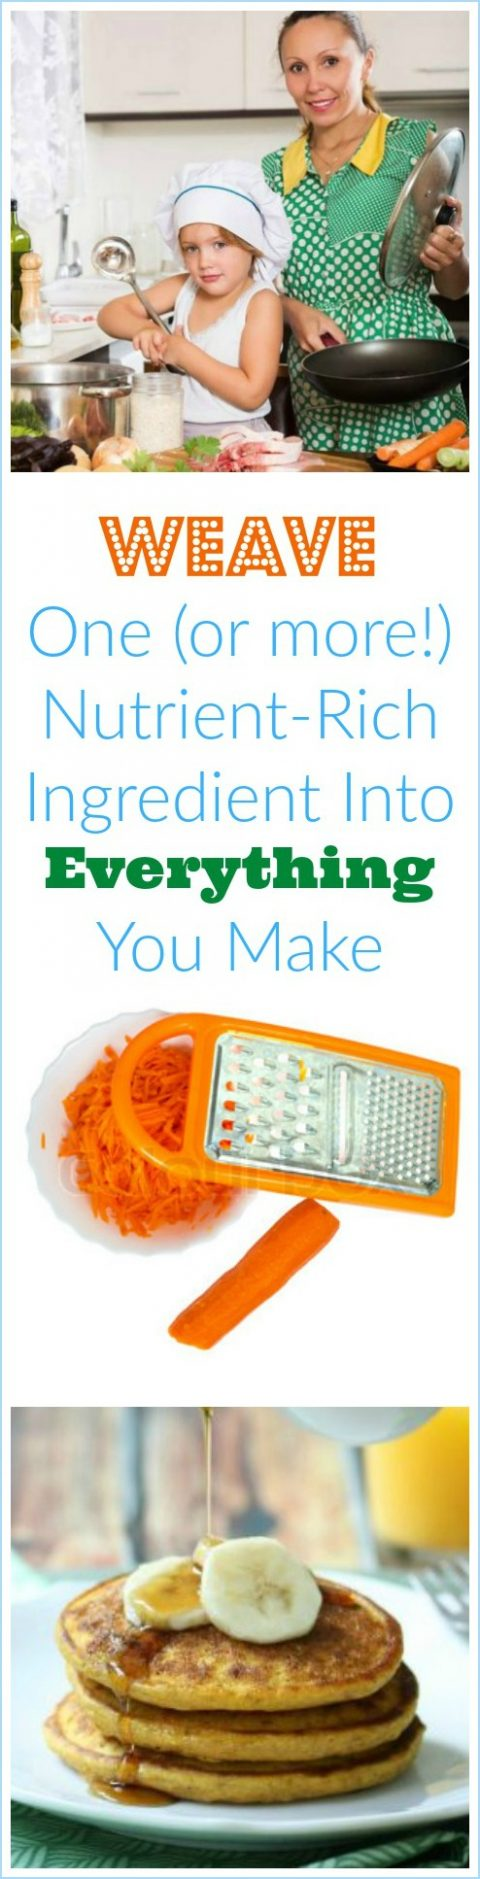 Weave One (or more!) Nutrient-Rich Ingredient Into Everything You Make via LizsHealthyTable.com